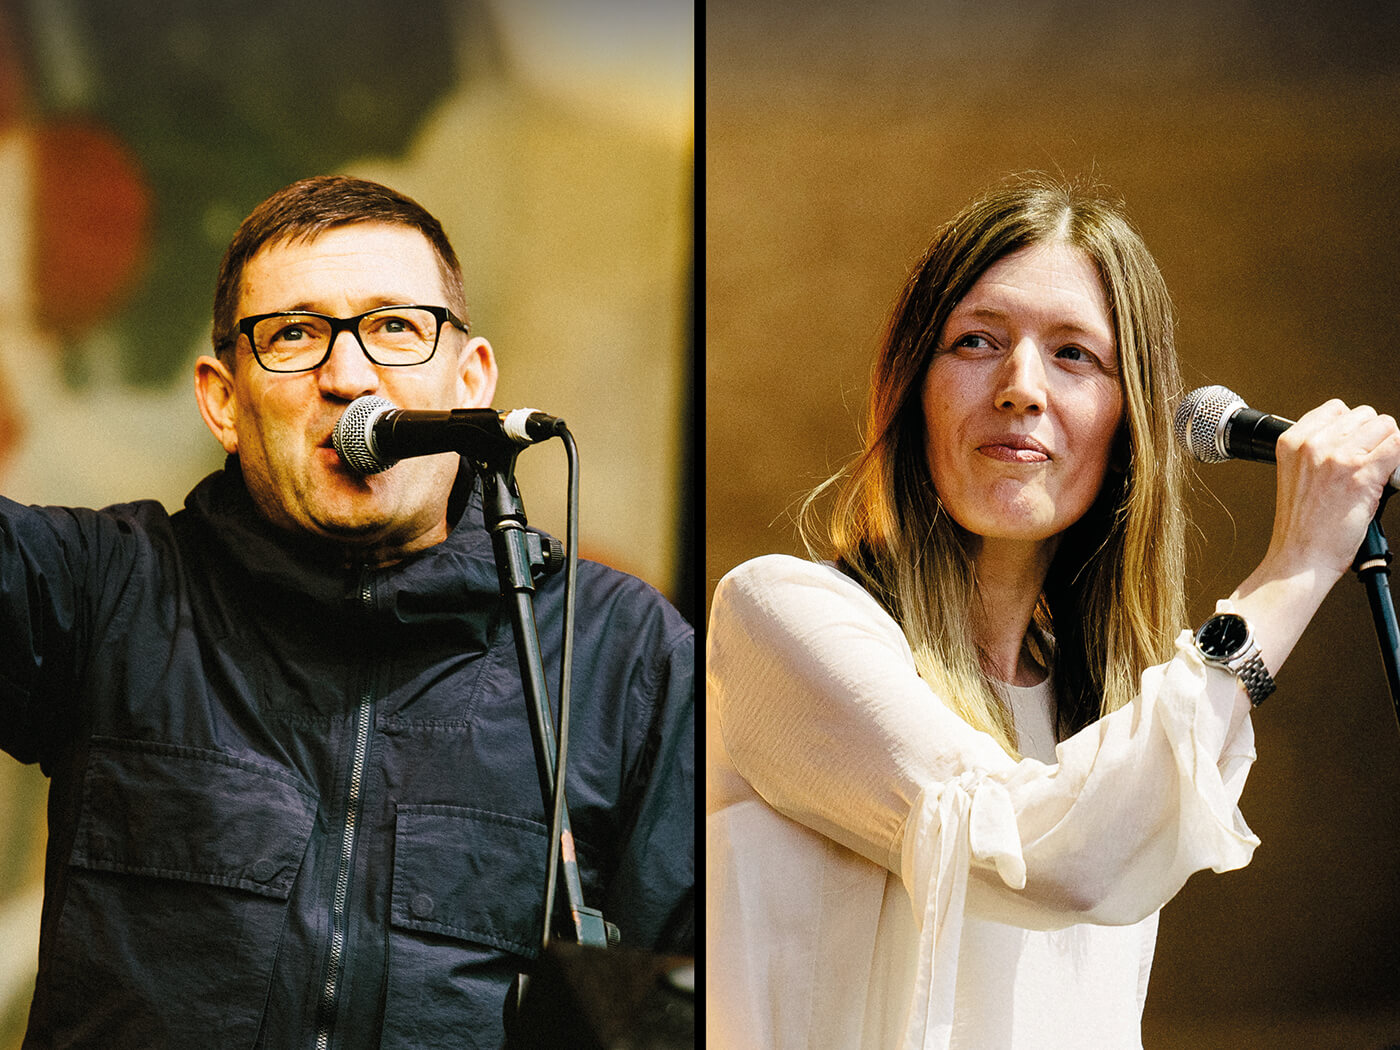 Paul Heaton & Jacqui Abbott announce free show for NHS workers